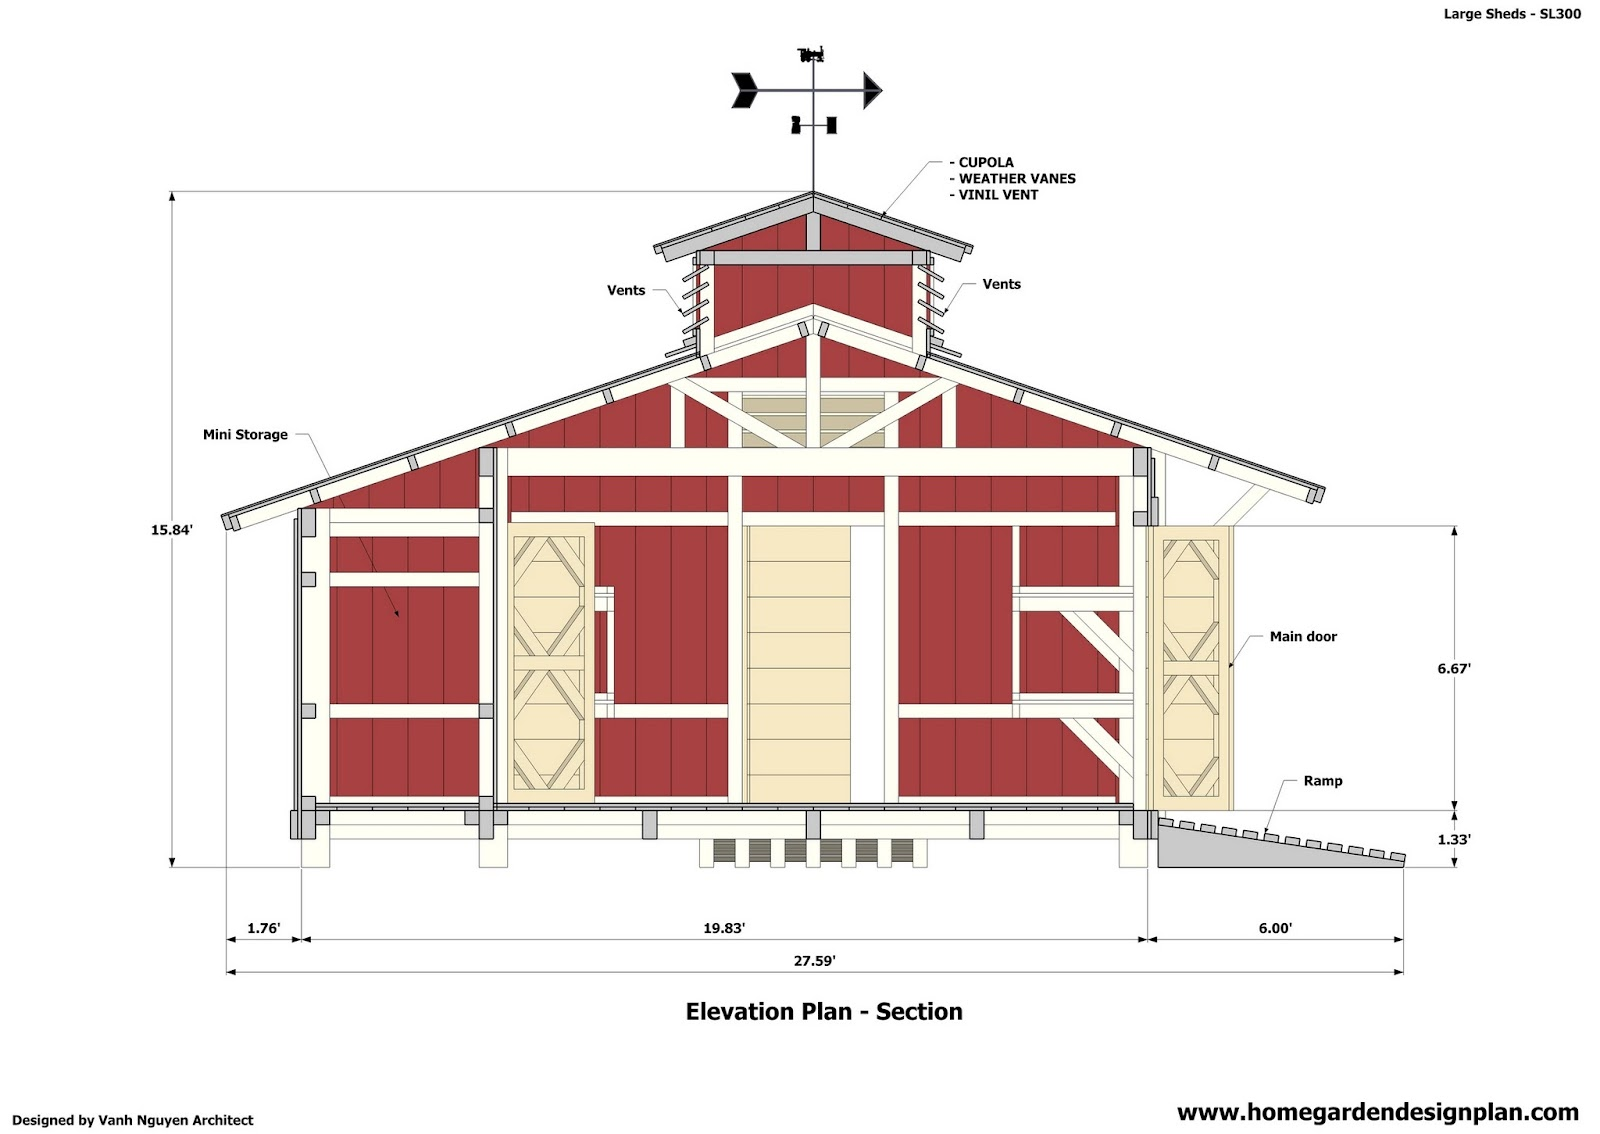 4 by 10 shed plans here nolaya for Barn blueprints free plans